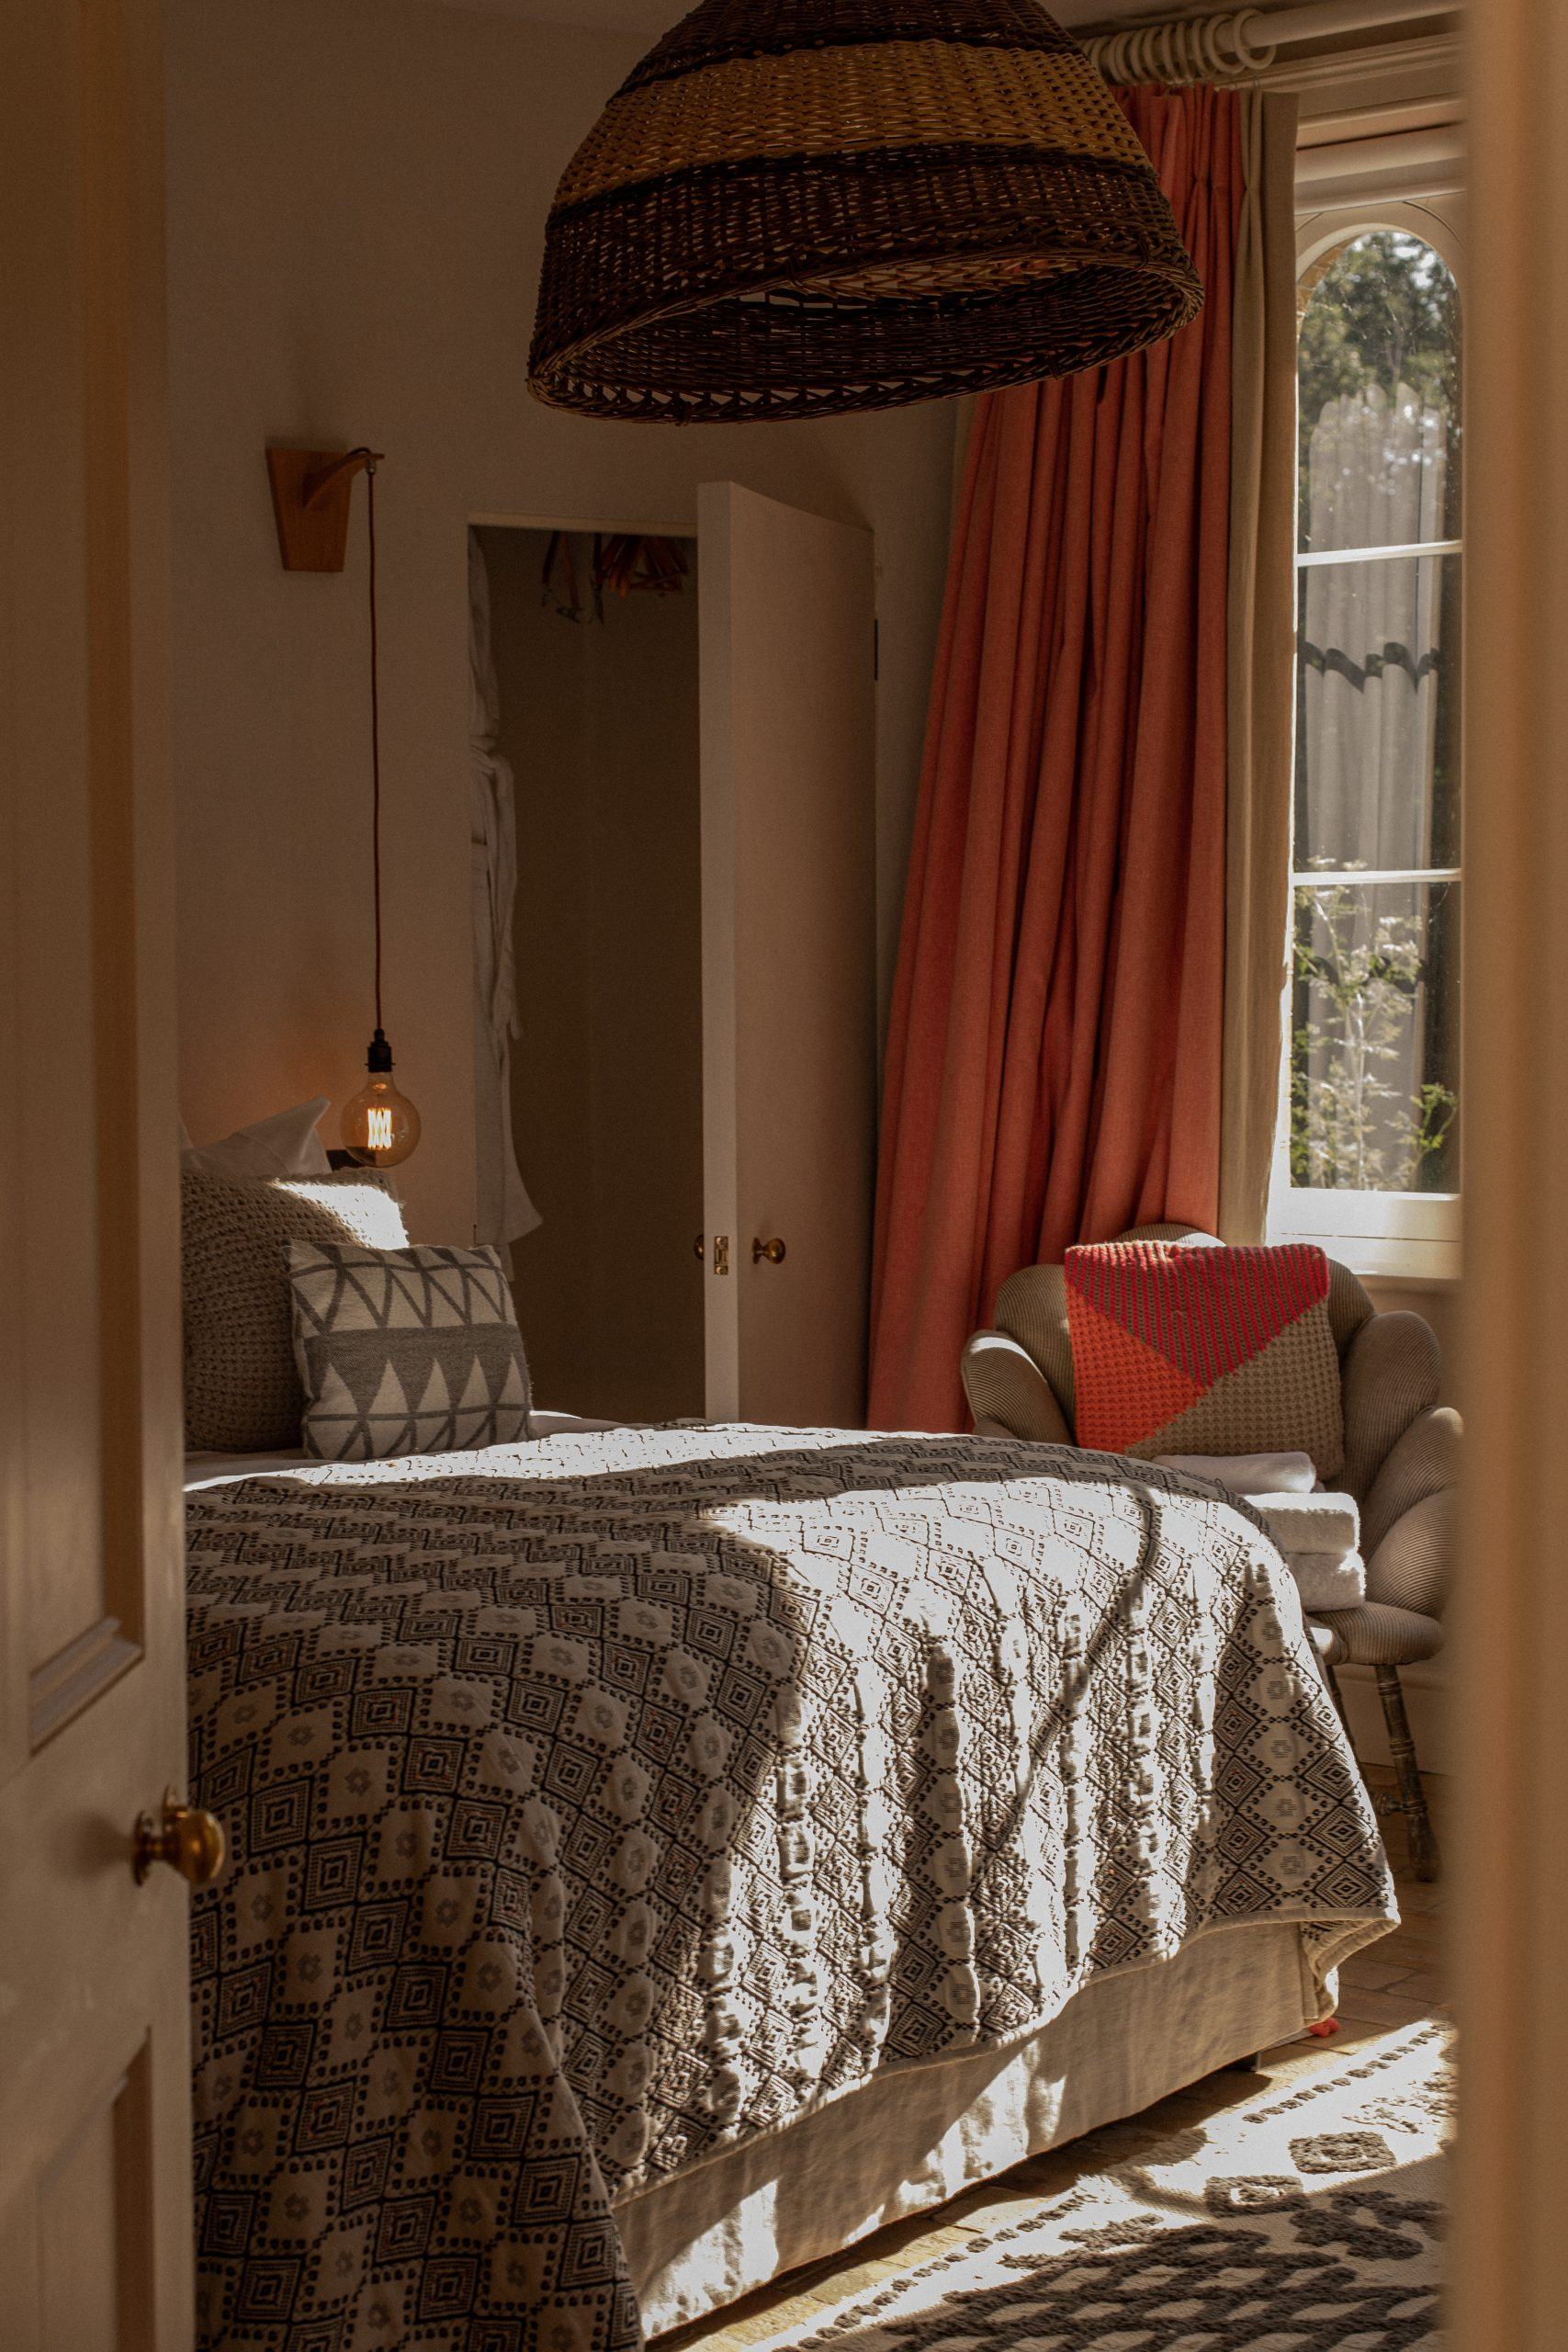 Photo of a bedroom through a doorway. There is a grey throw over the bed, pink hued curtains, an oversized hanging wicker lampshade and plenty of snuggly cushions